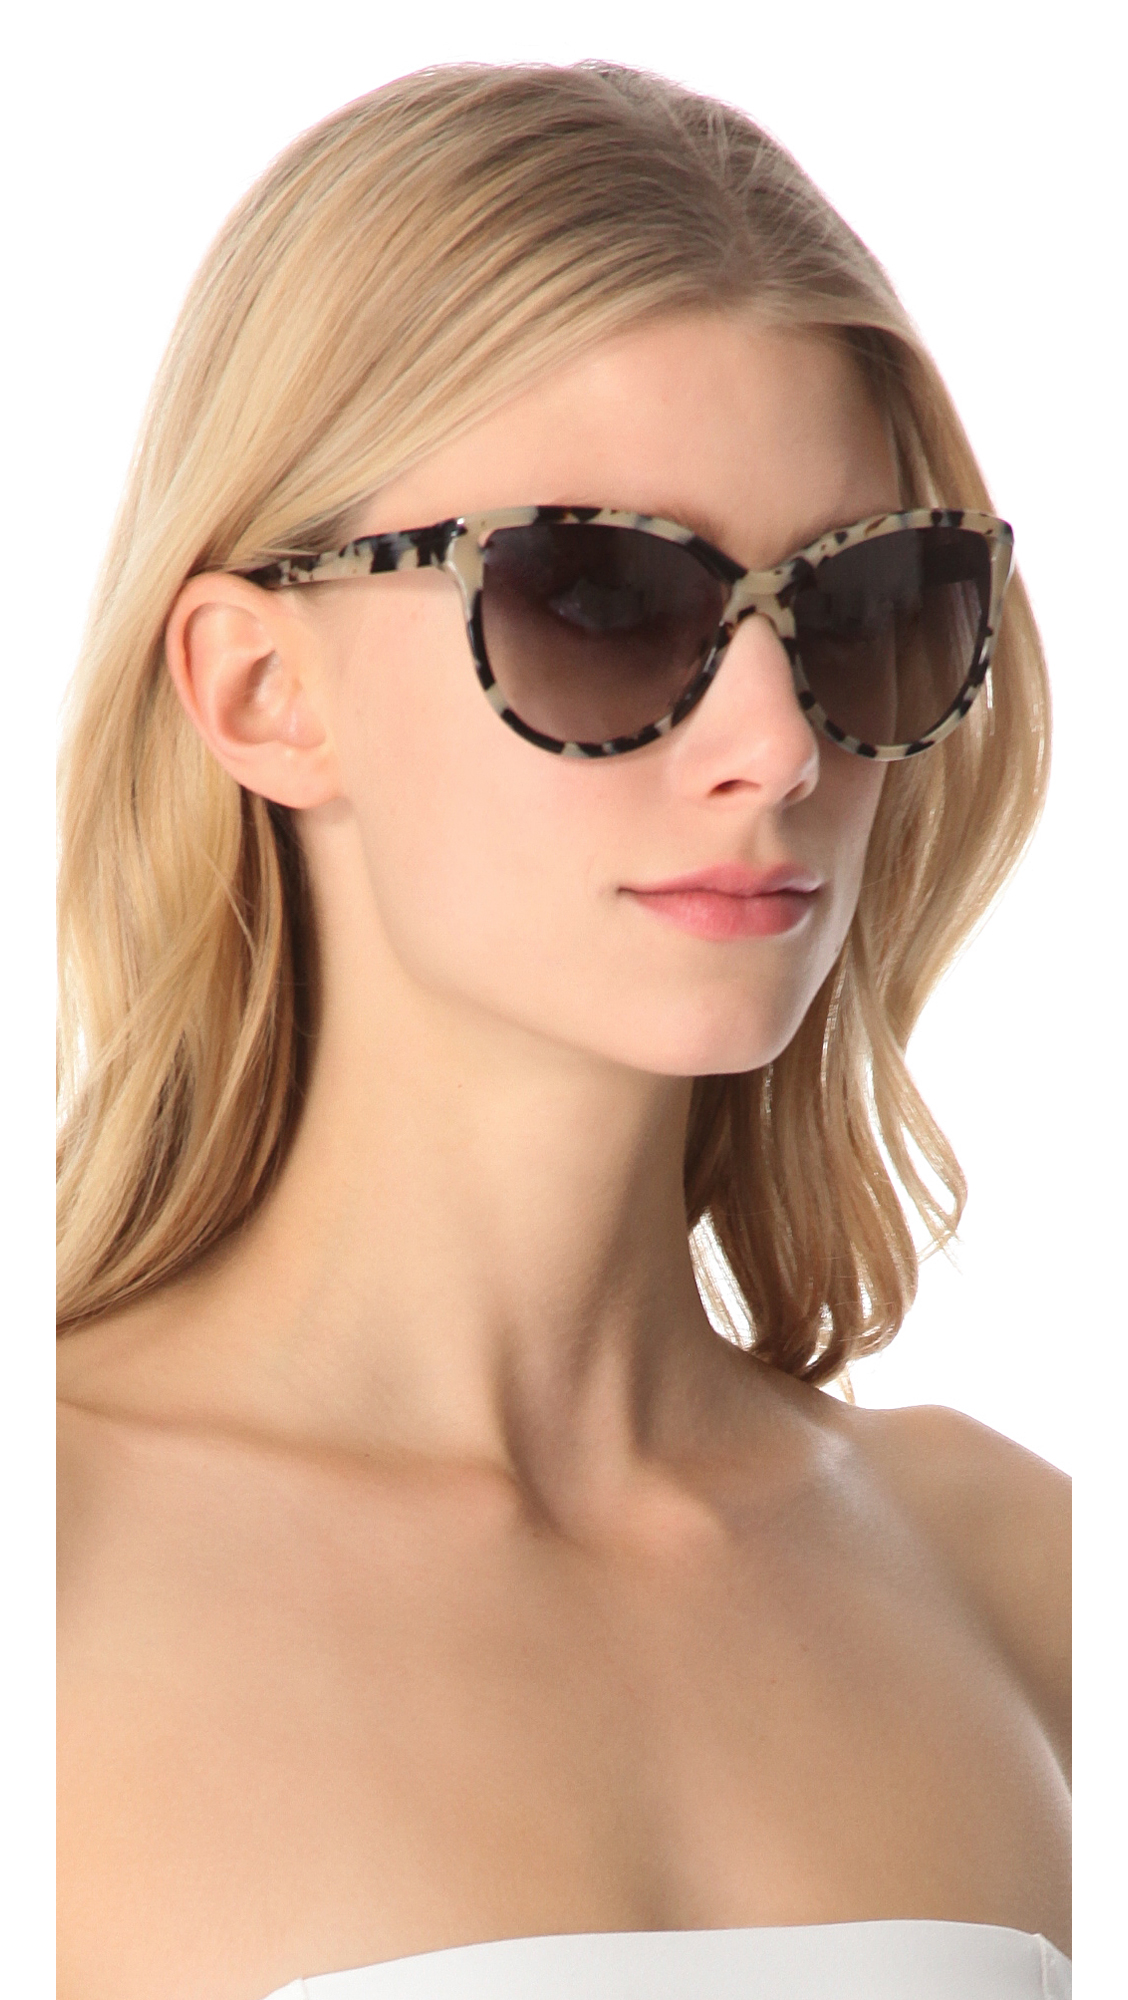 Stella McCartney Eyewear Cat-eye sunglasses GvNYH